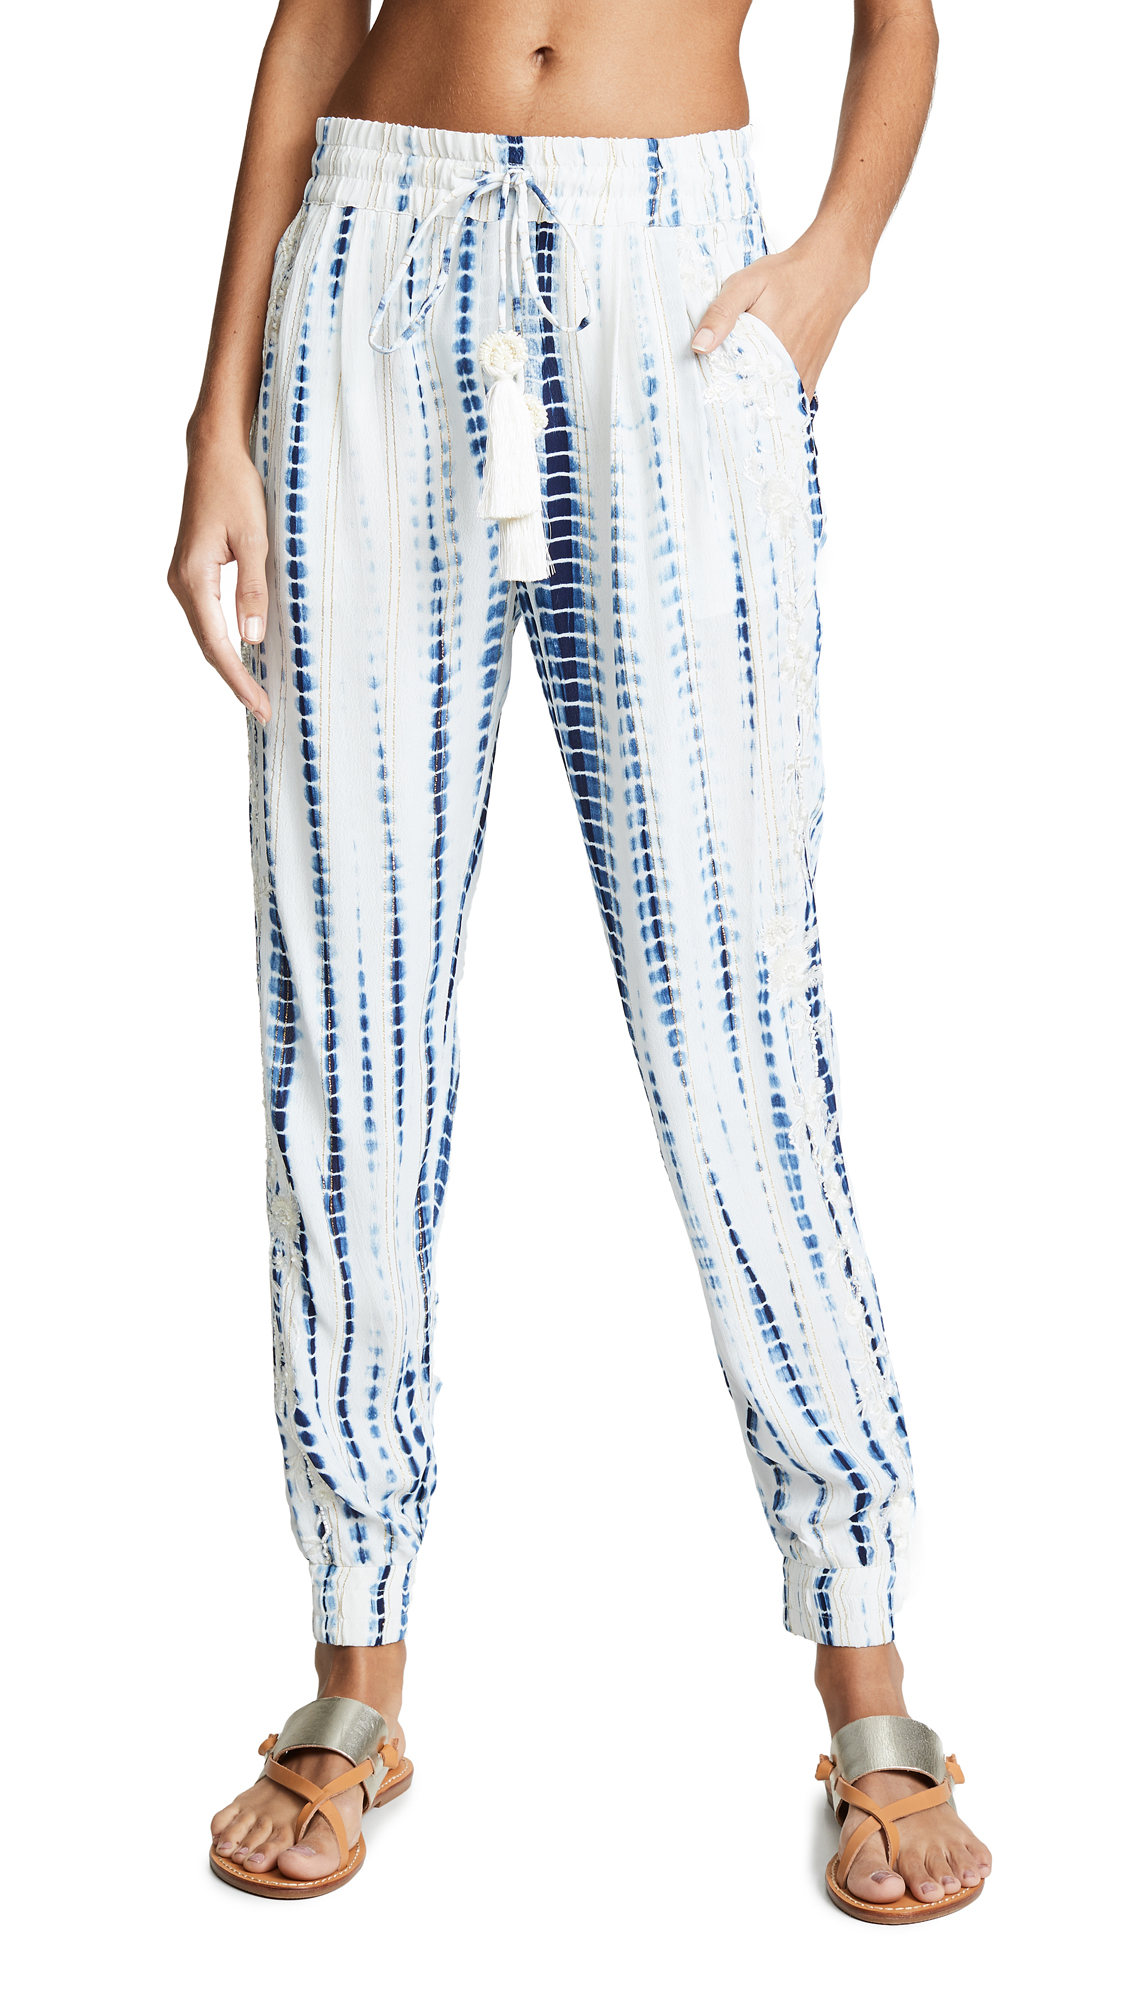 HEMANT & NANDITA Maera Pants in White/Blue